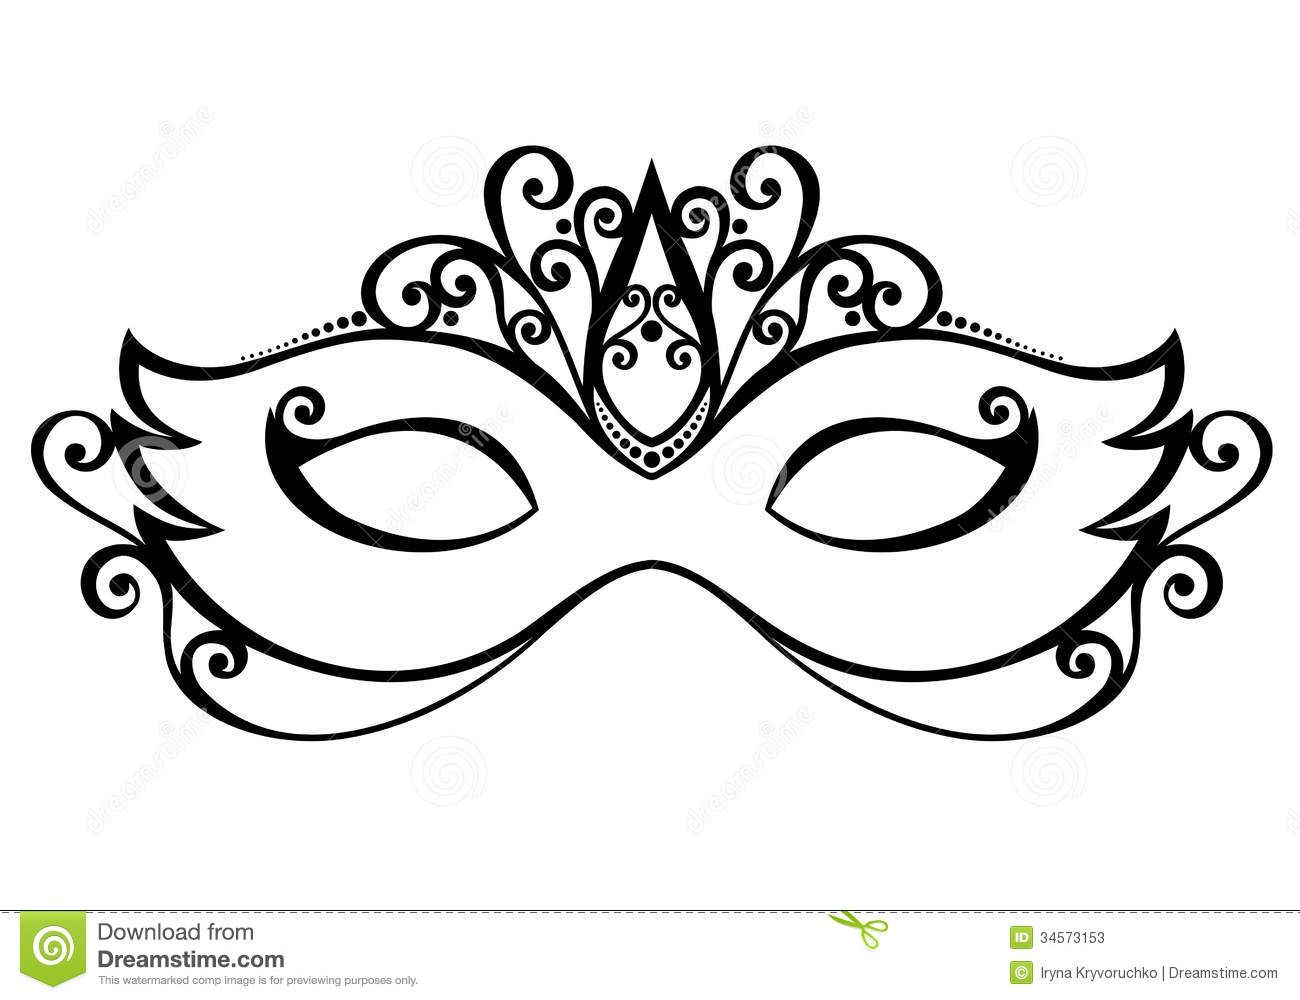 Use the form below to delete this Masquerade Mask Clip Art.